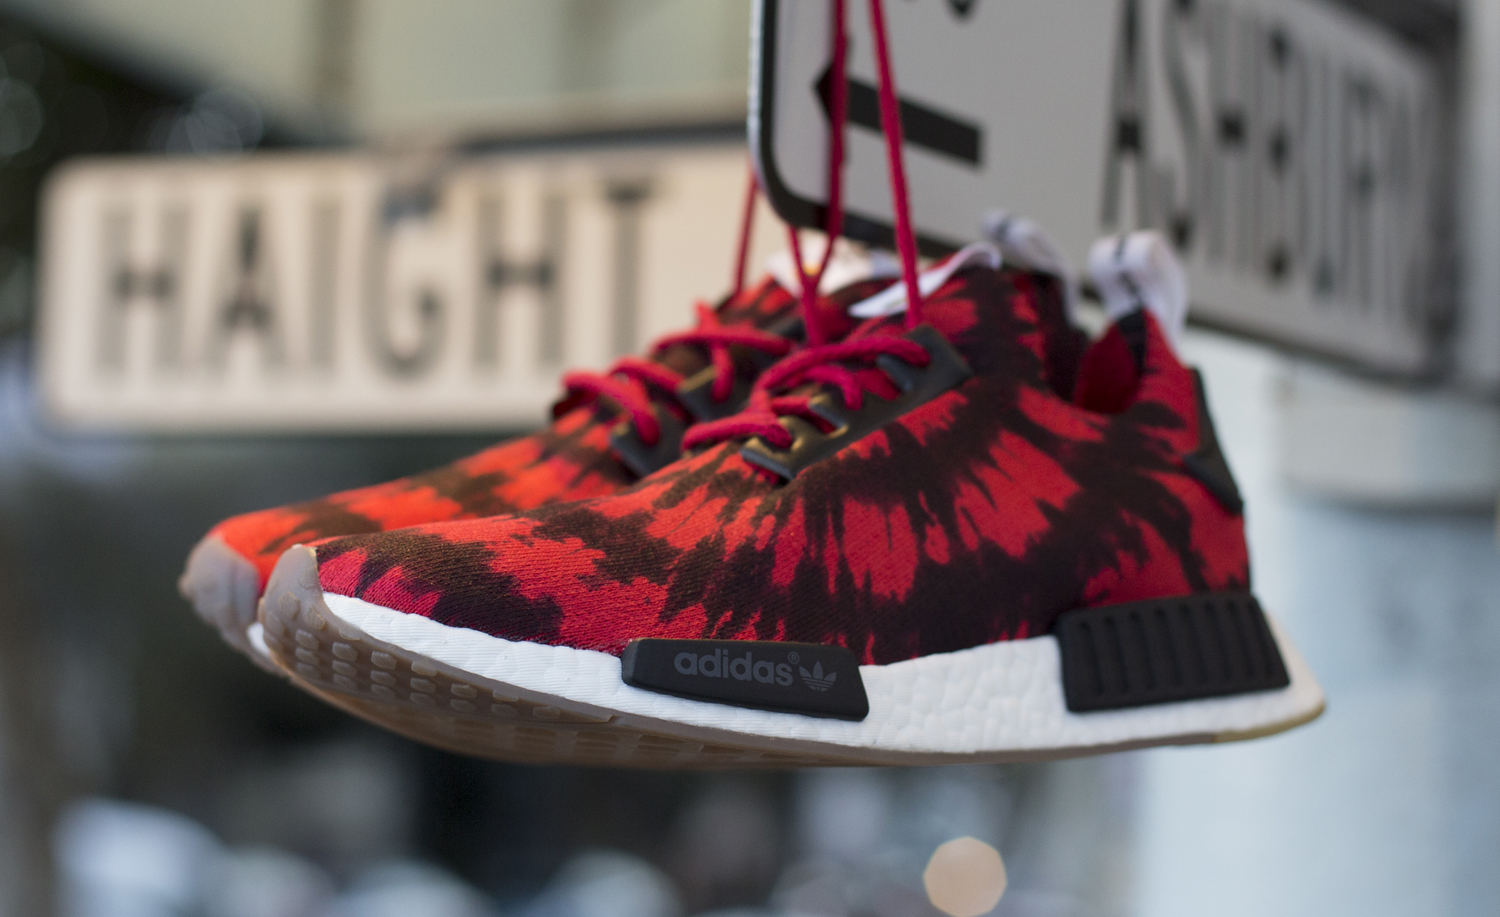 Nice Kicks Opens New Store With NMD Collaboration